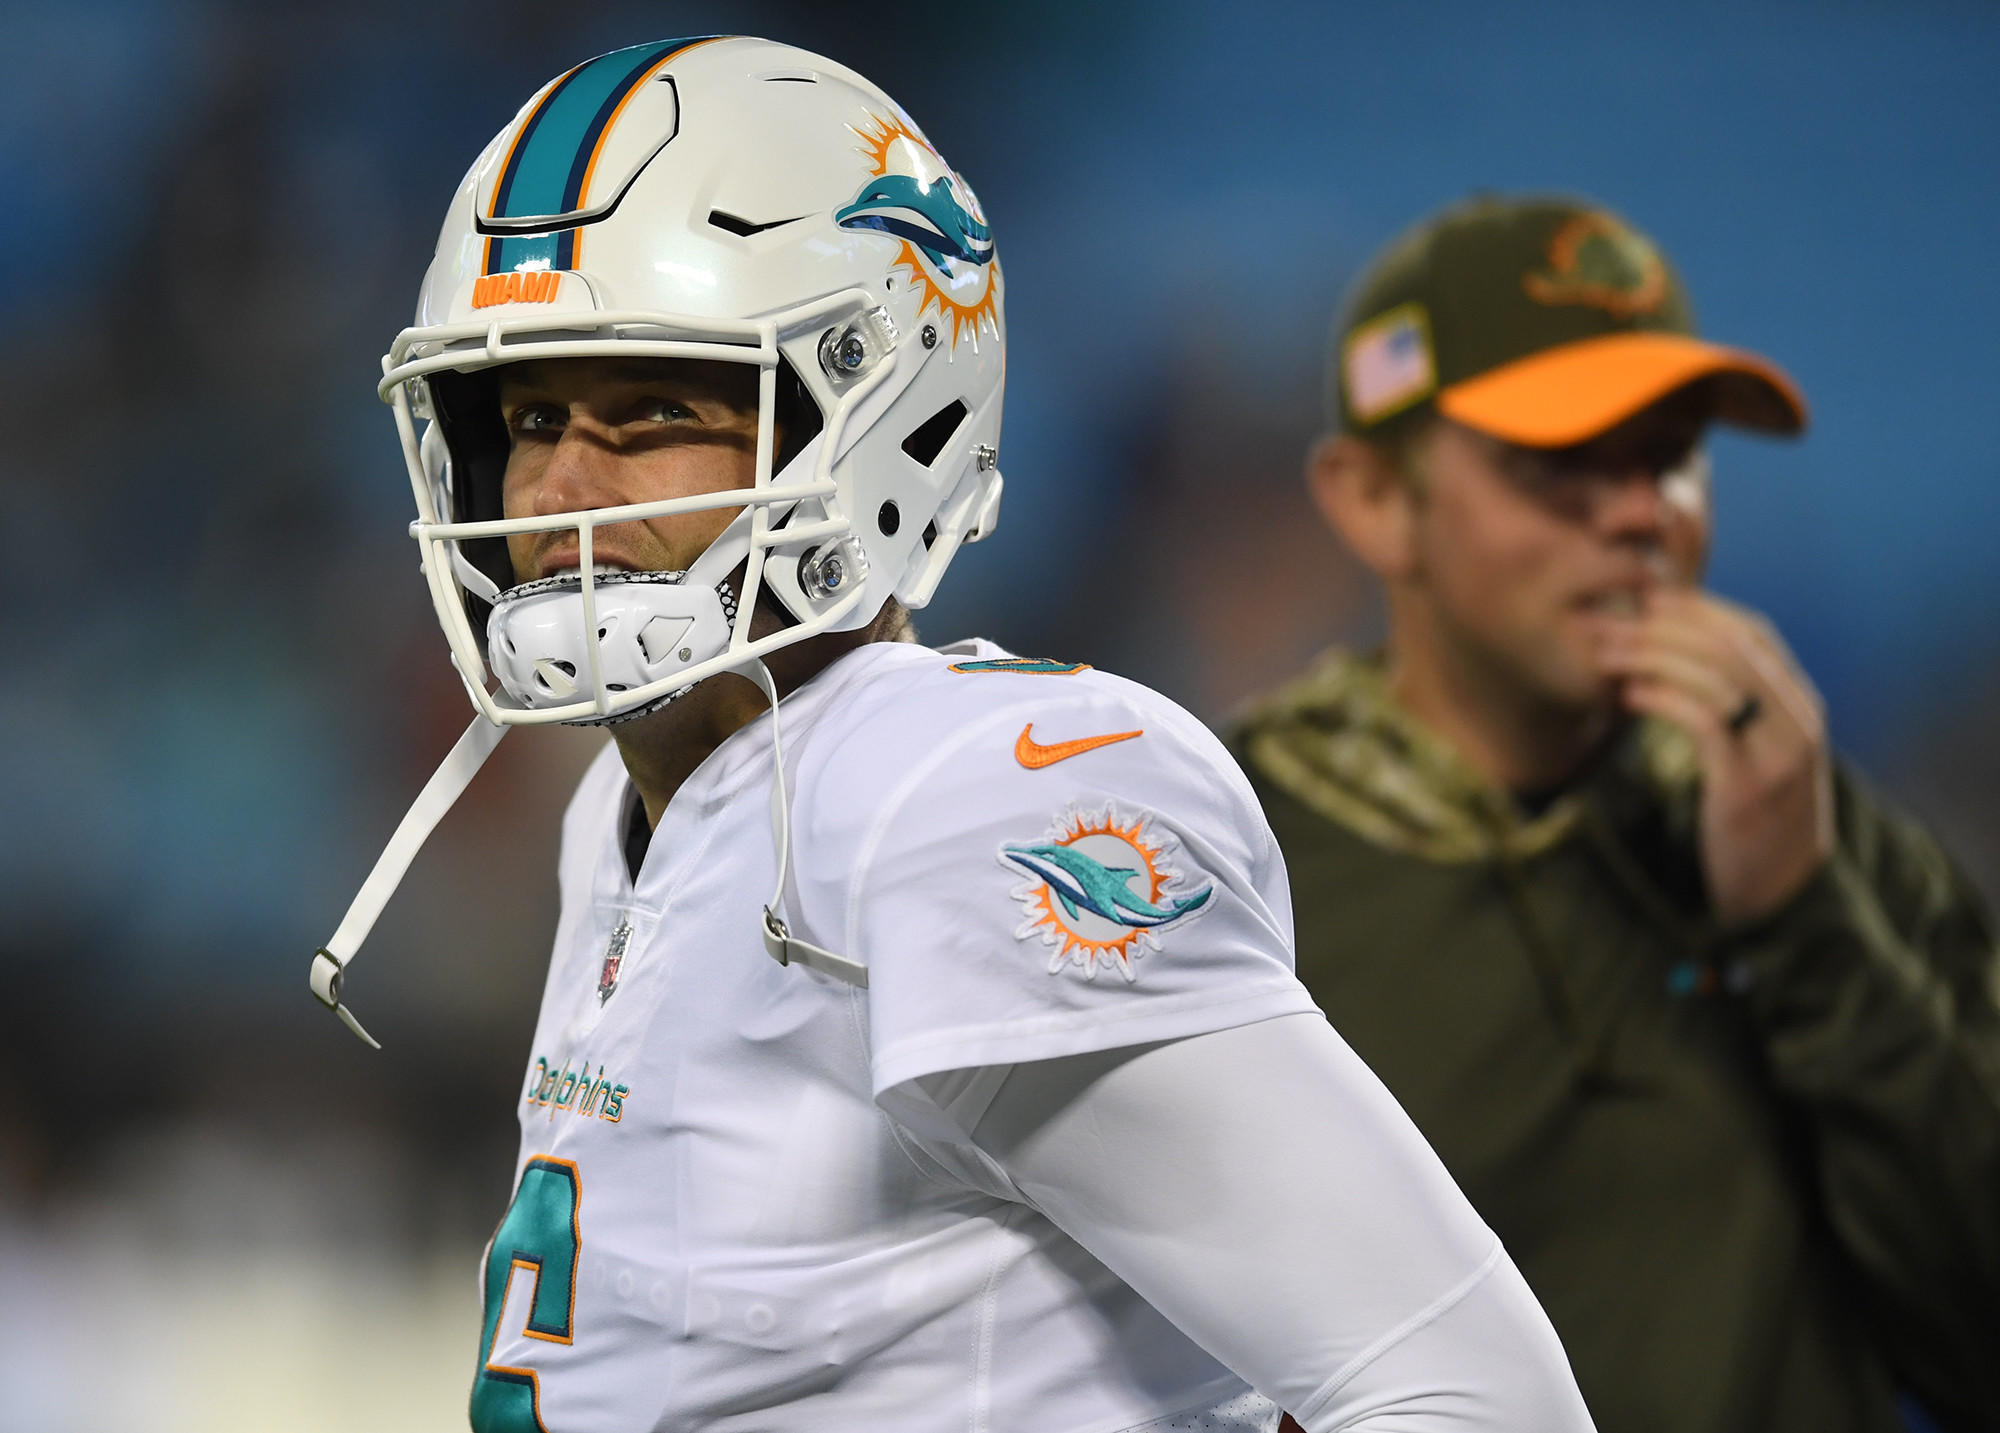 Fl-sp-dolphins-20171117